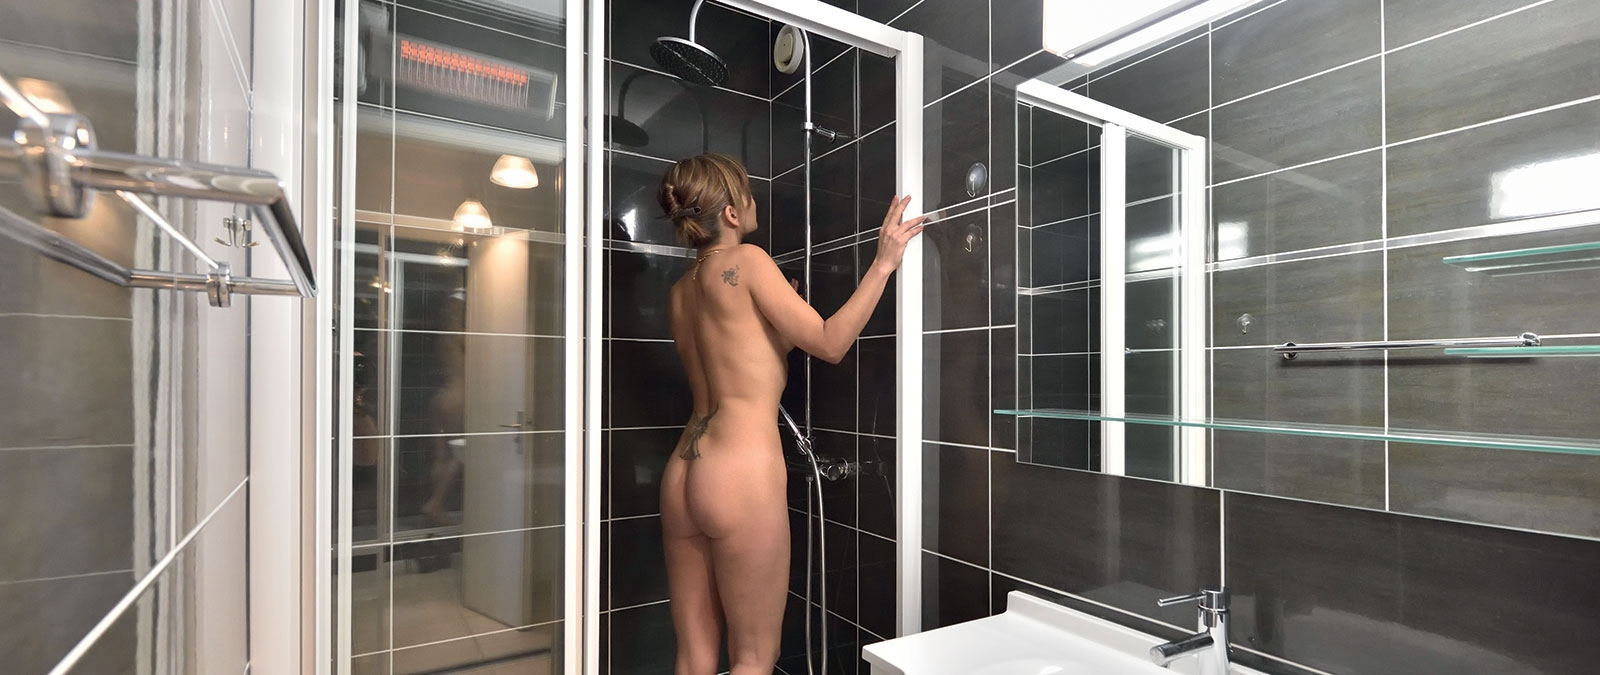 Bathroom with shower Arena naturist studio flat